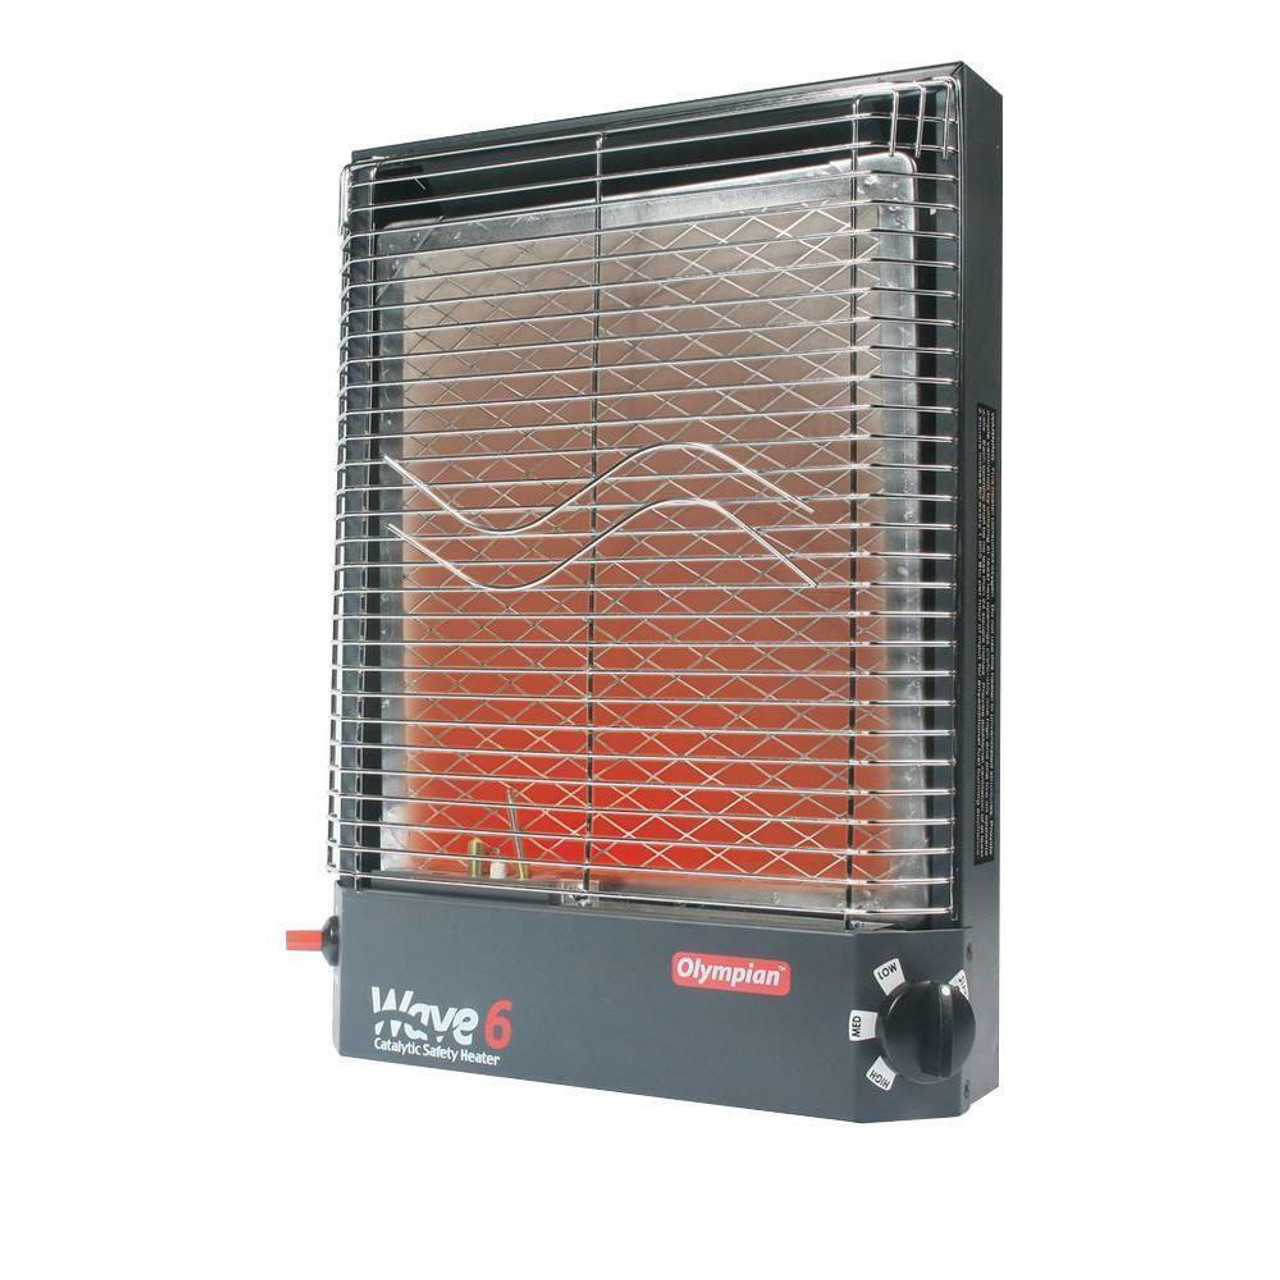 OLYMPIAN WAVE-6 HEATER (08-1002) Product Shown